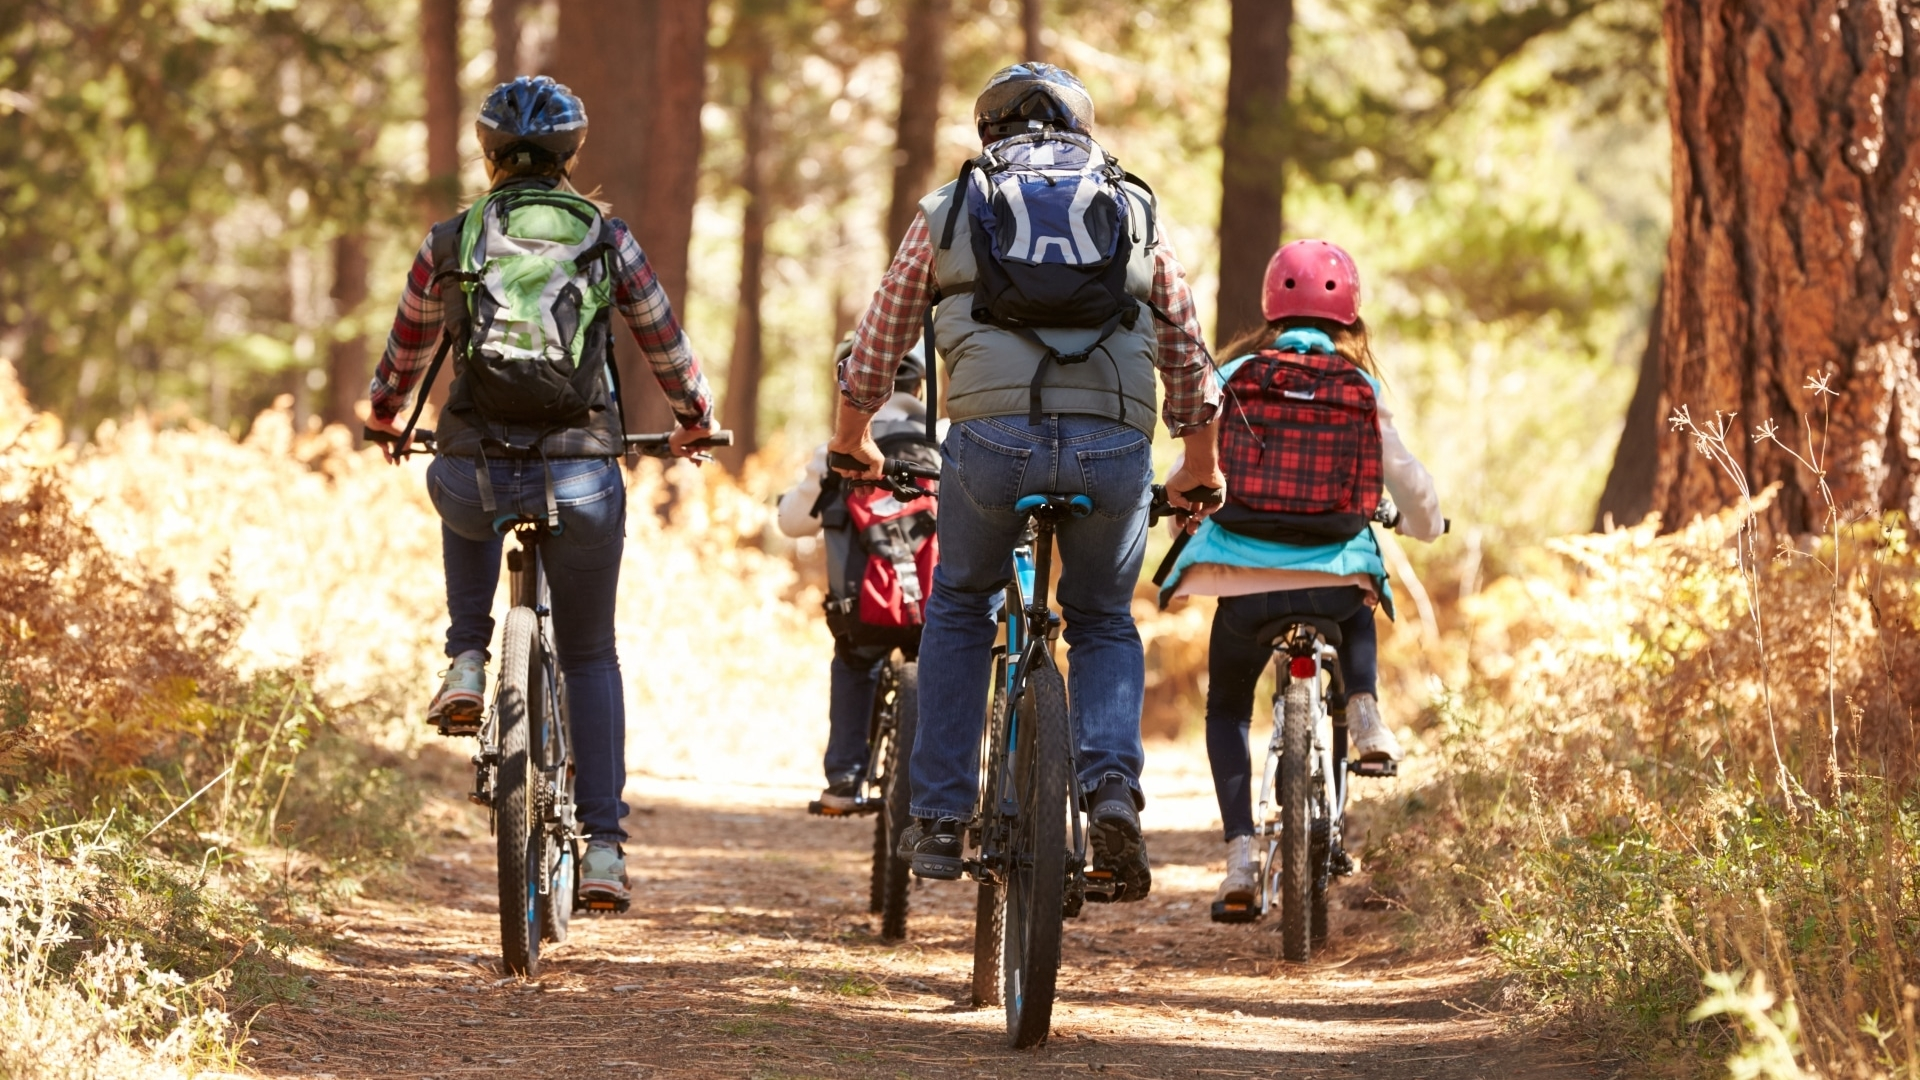 Family mountain biking on forest trail, back view © iStock